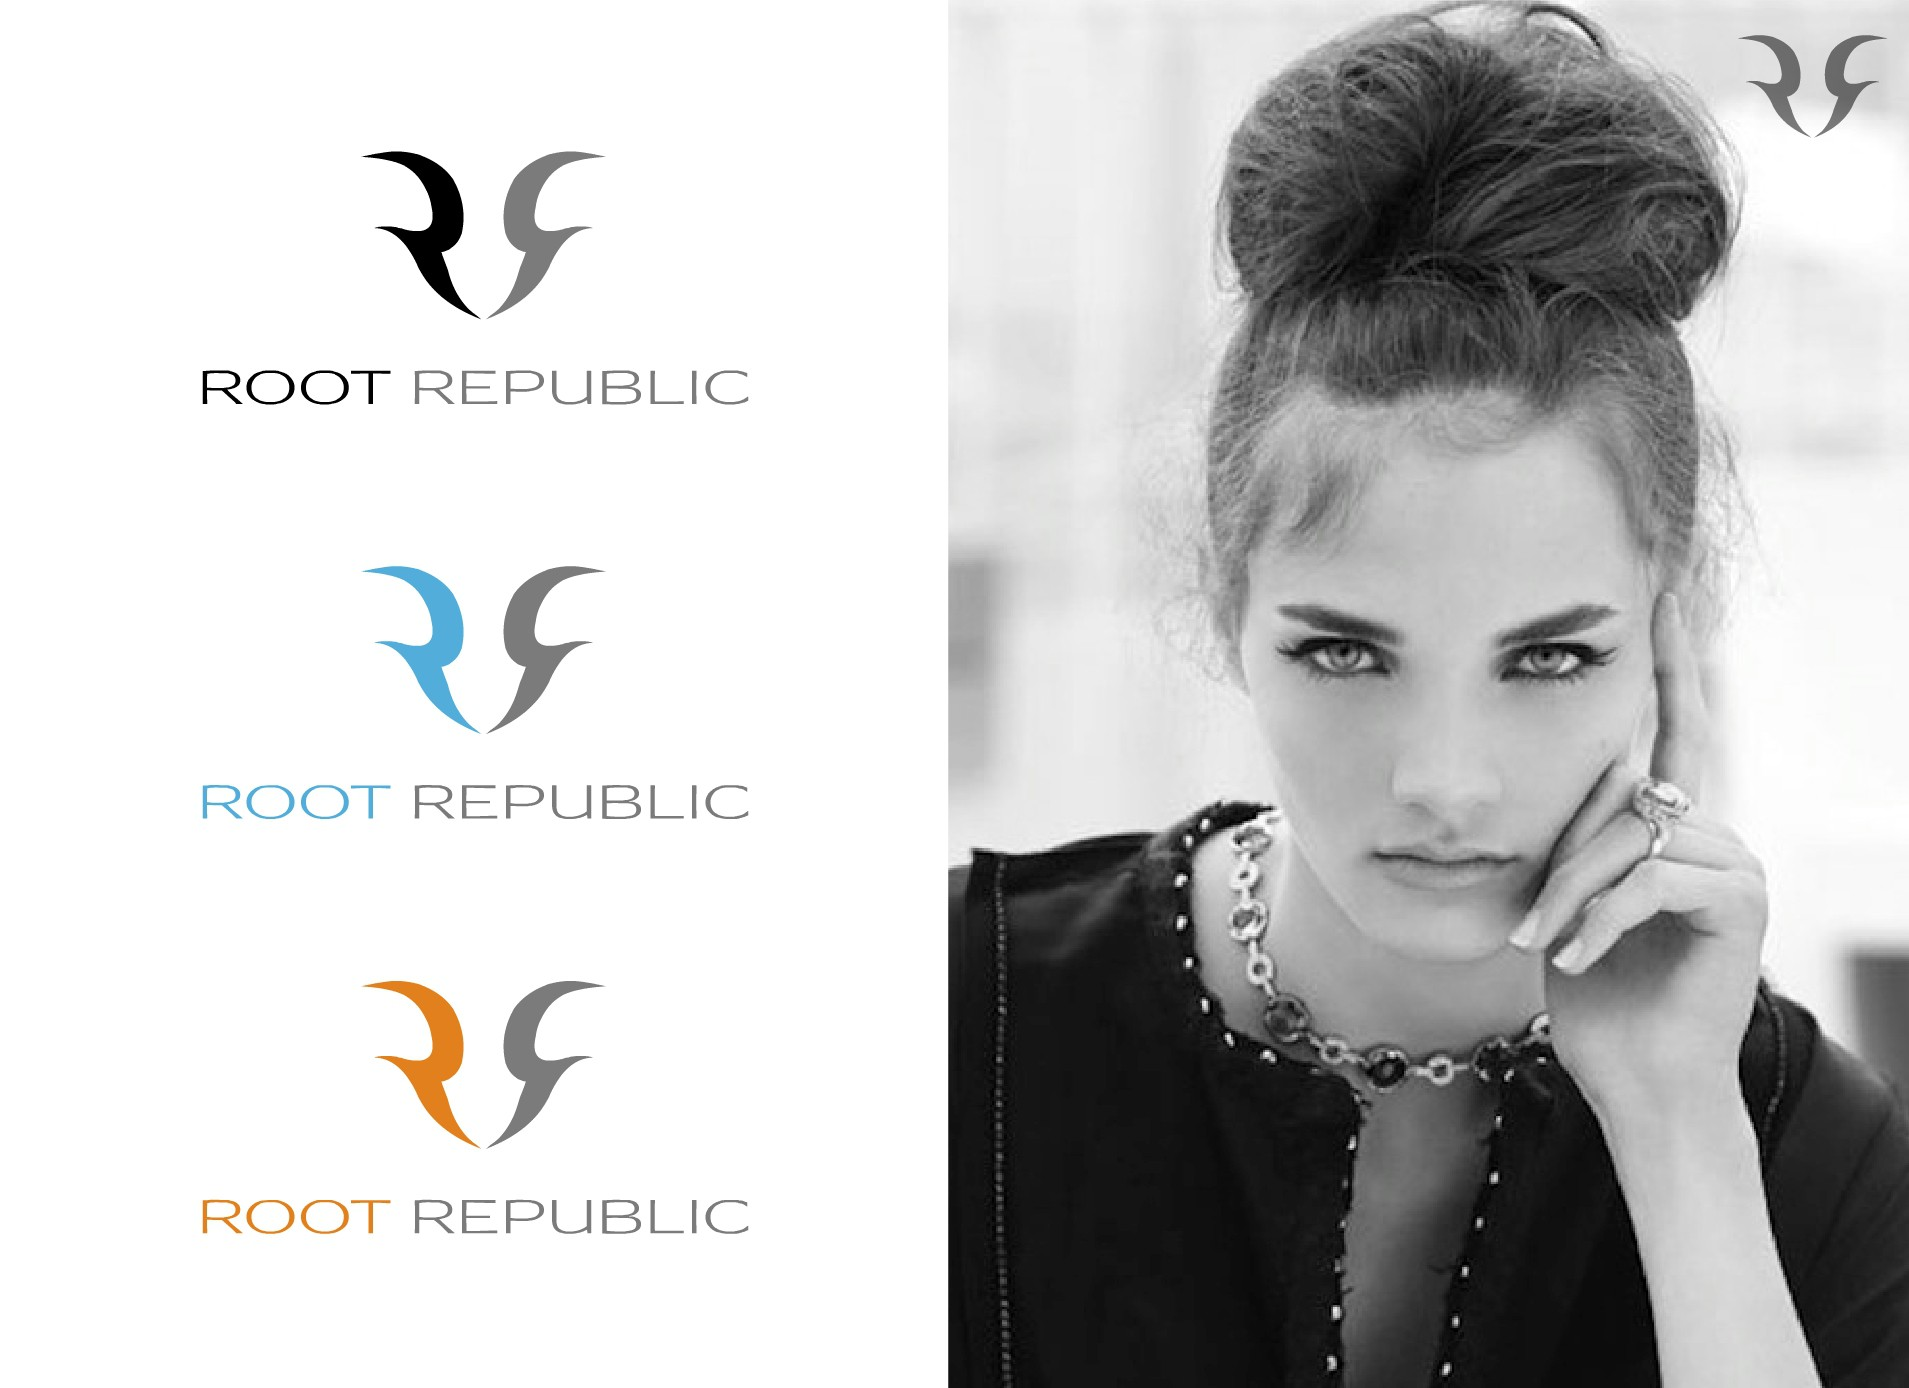 logo for Root Republic